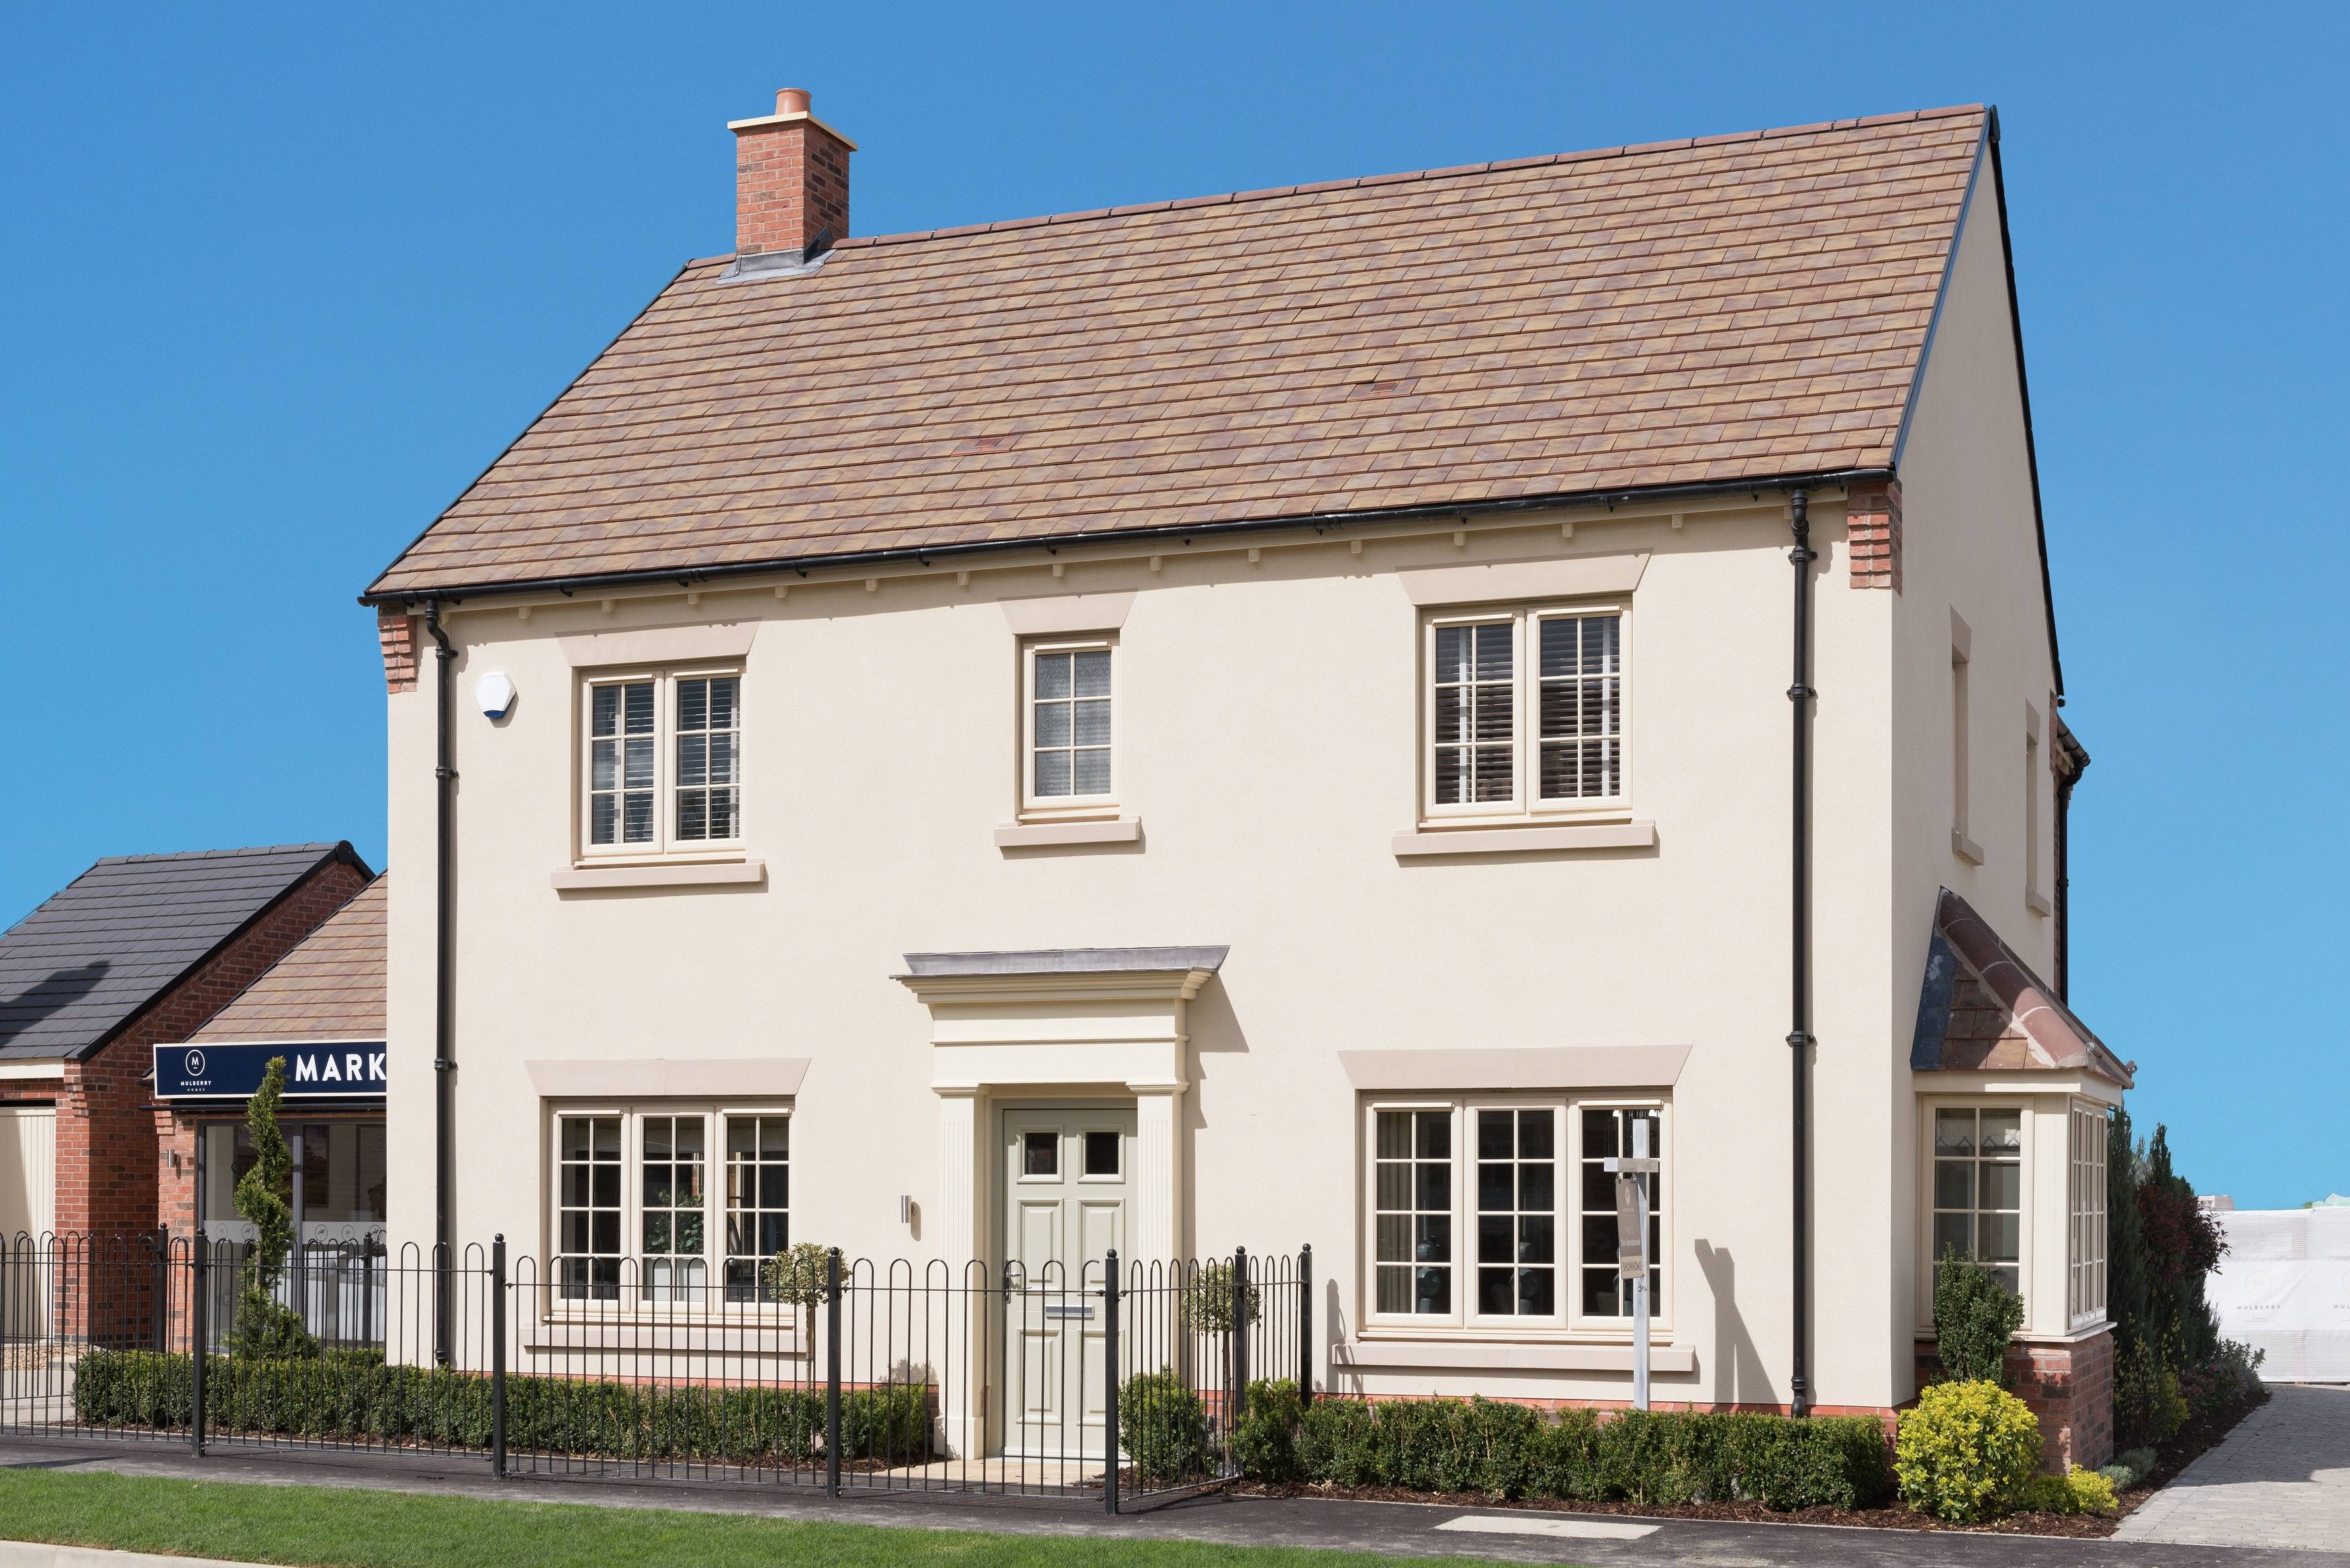 MULBERRY HOMES' STRATEGIC EXPANSION SEES STRONG FIRST QUARTER